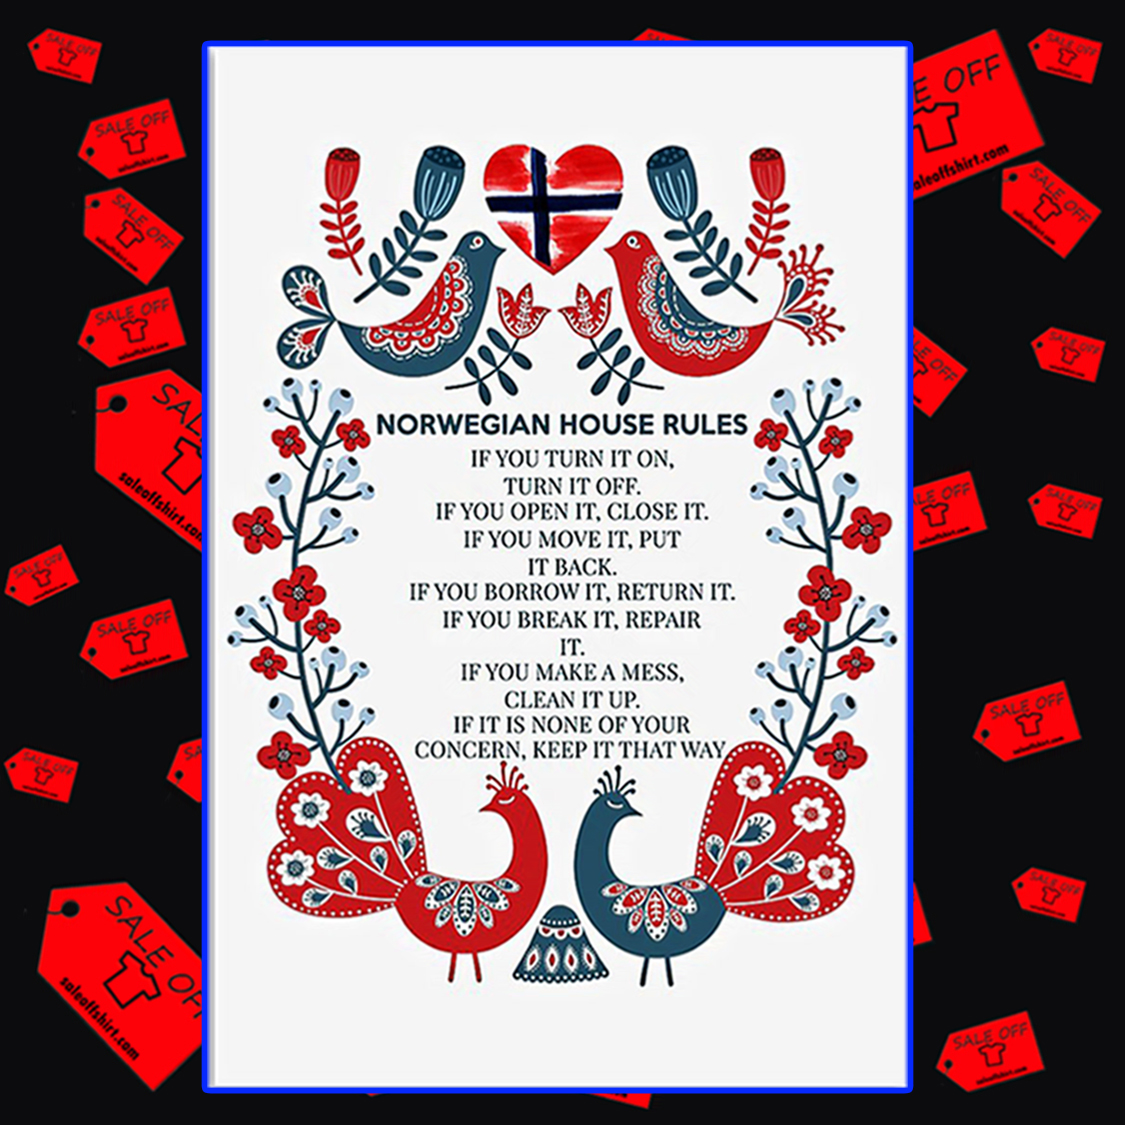 Norwegian house rules if you turn it on poster 24x36